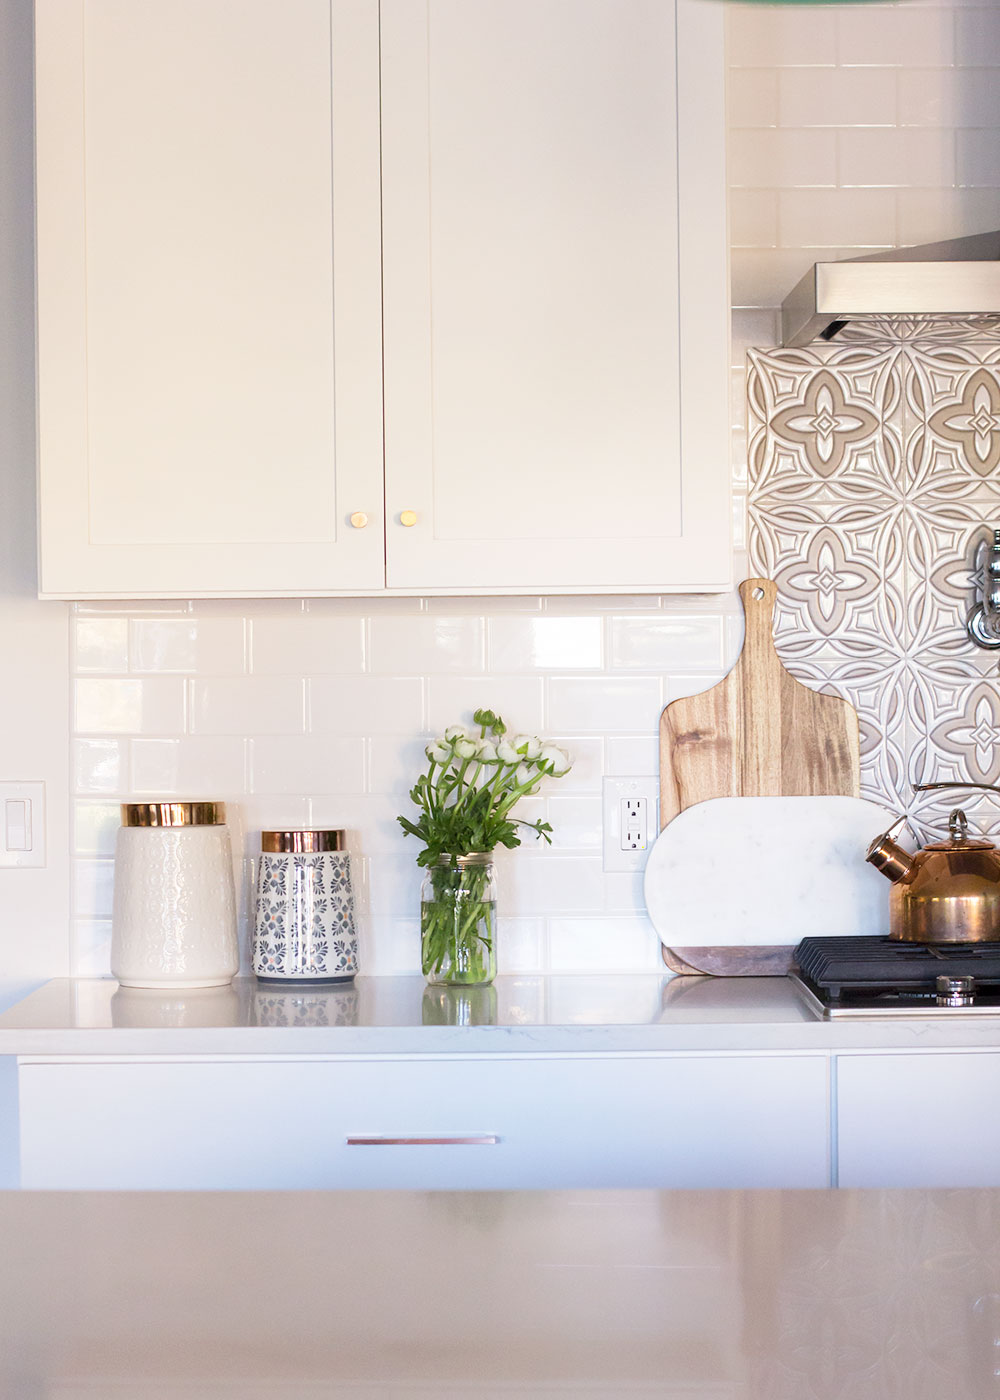 pretty moderny white kitchen details | thelovedesignedlife.com